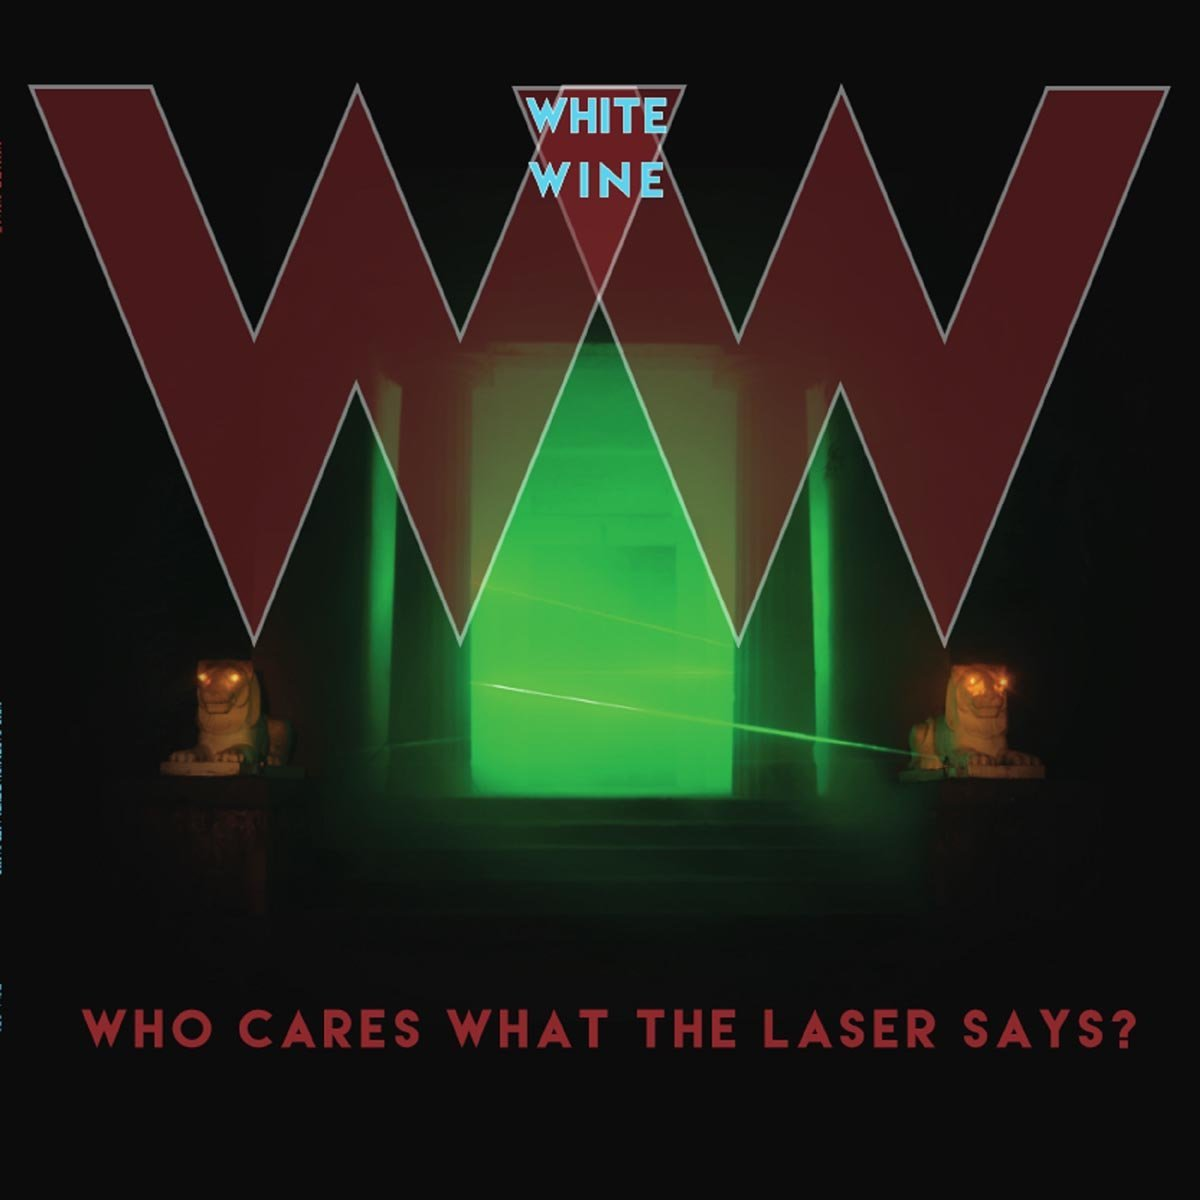 WHO CARES WHAT THE LASER SAYS - LP